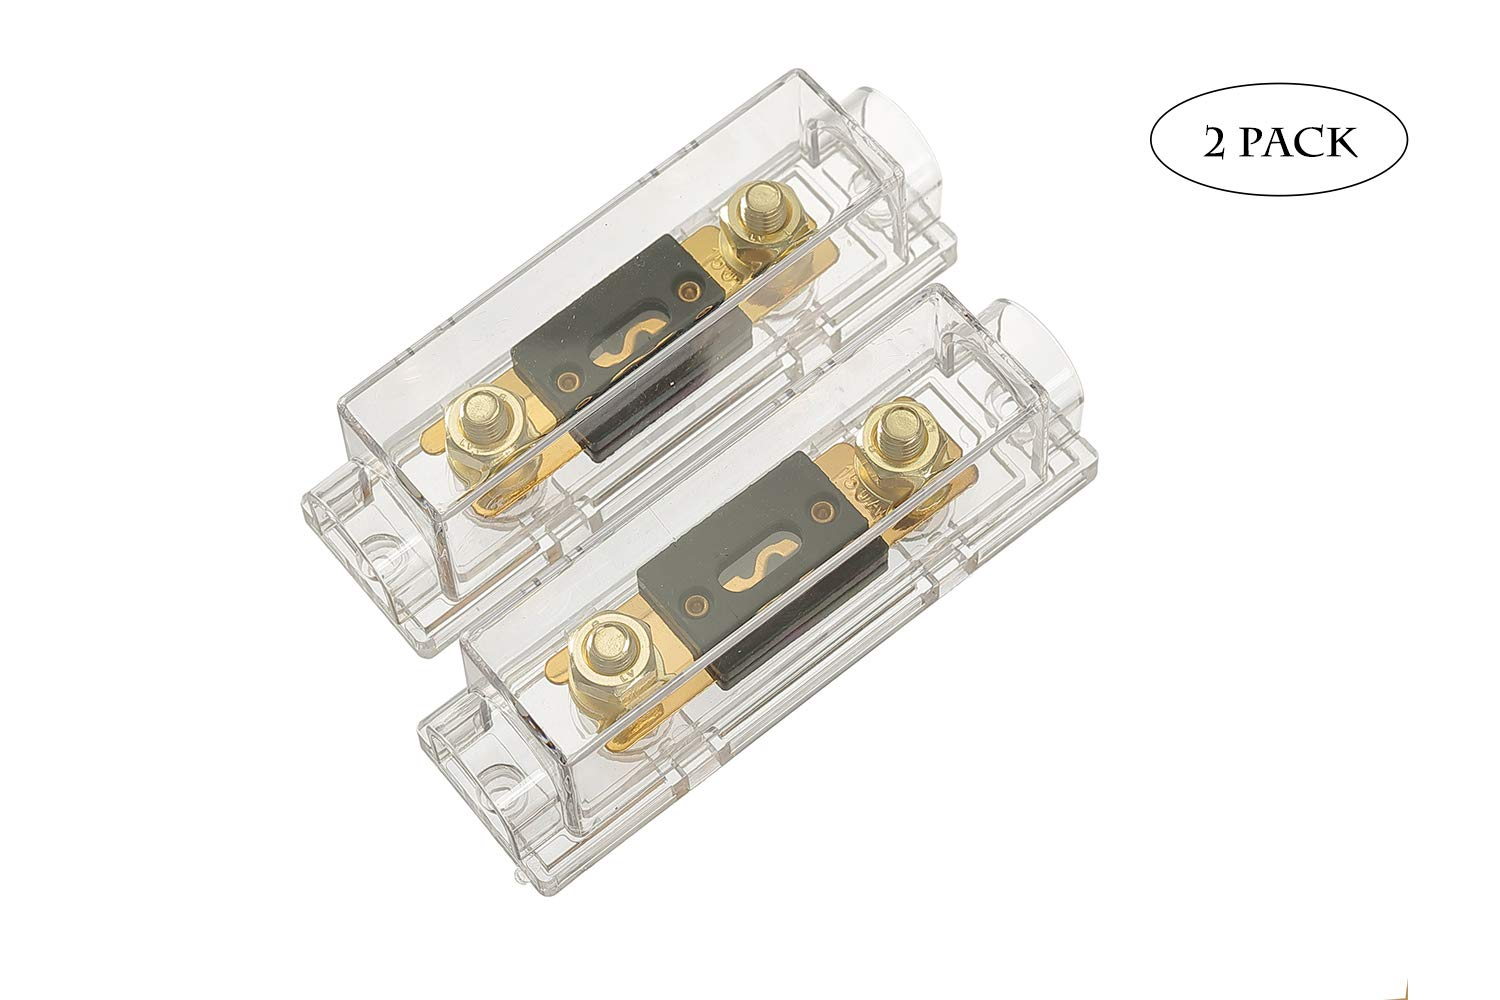 2 pack 150A Inline ANL Fuse Holder,Solid Brass 0//2//4 Gauge ANL Fuse Block with 150 Amp ANL Fuses for auto boat or other vehicles Car Audio Amplifier